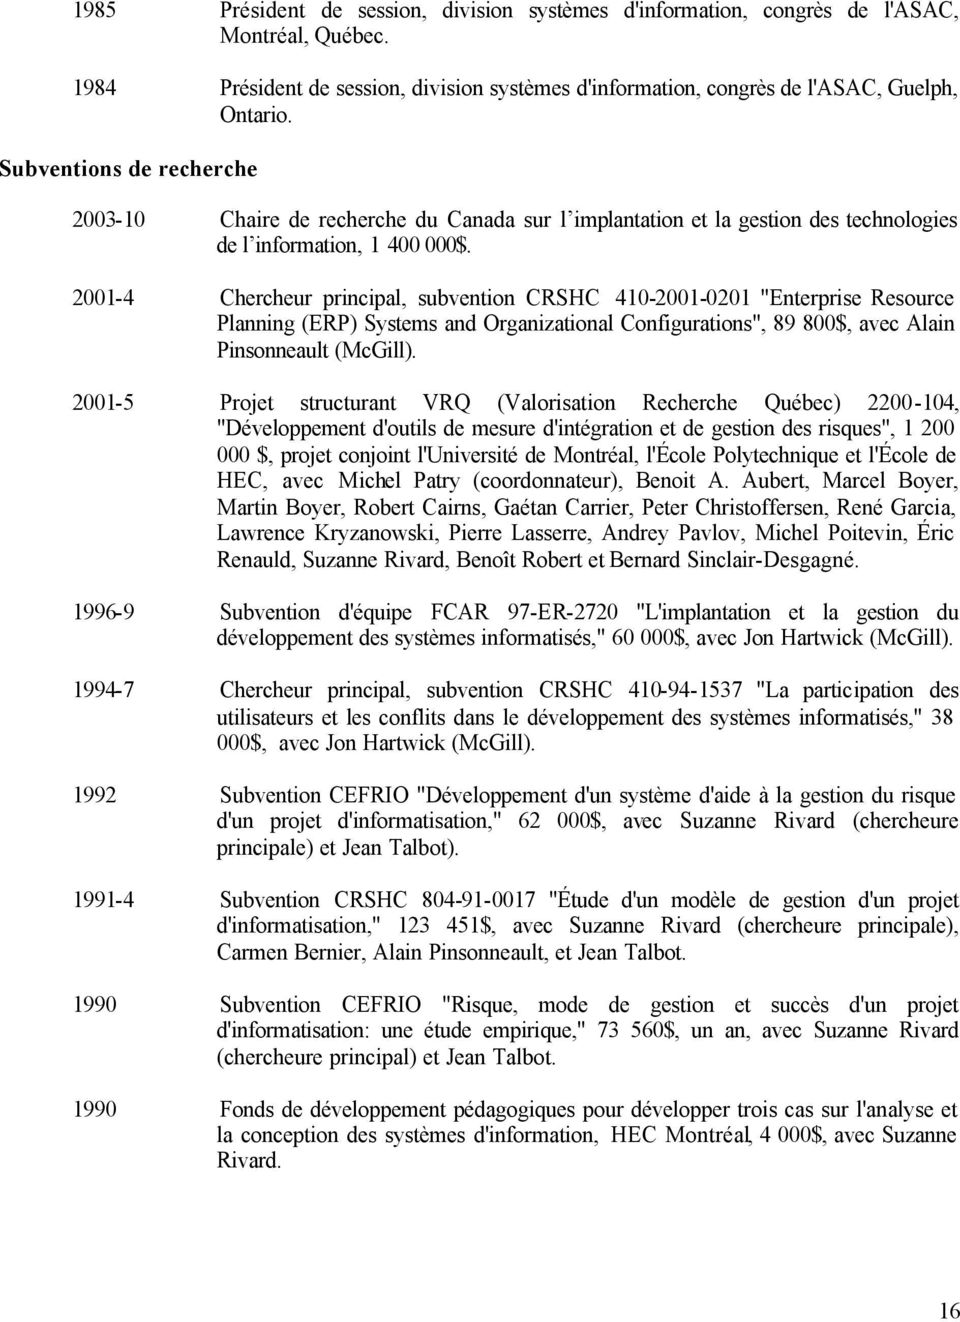 "2001-4 Chercheur principal, subvention CRSHC 410-2001-0201 ""Enterprise Resource Planning (ERP) Systems and Organizational Configurations"", 89 800$, avec Alain Pinsonneault (McGill)."